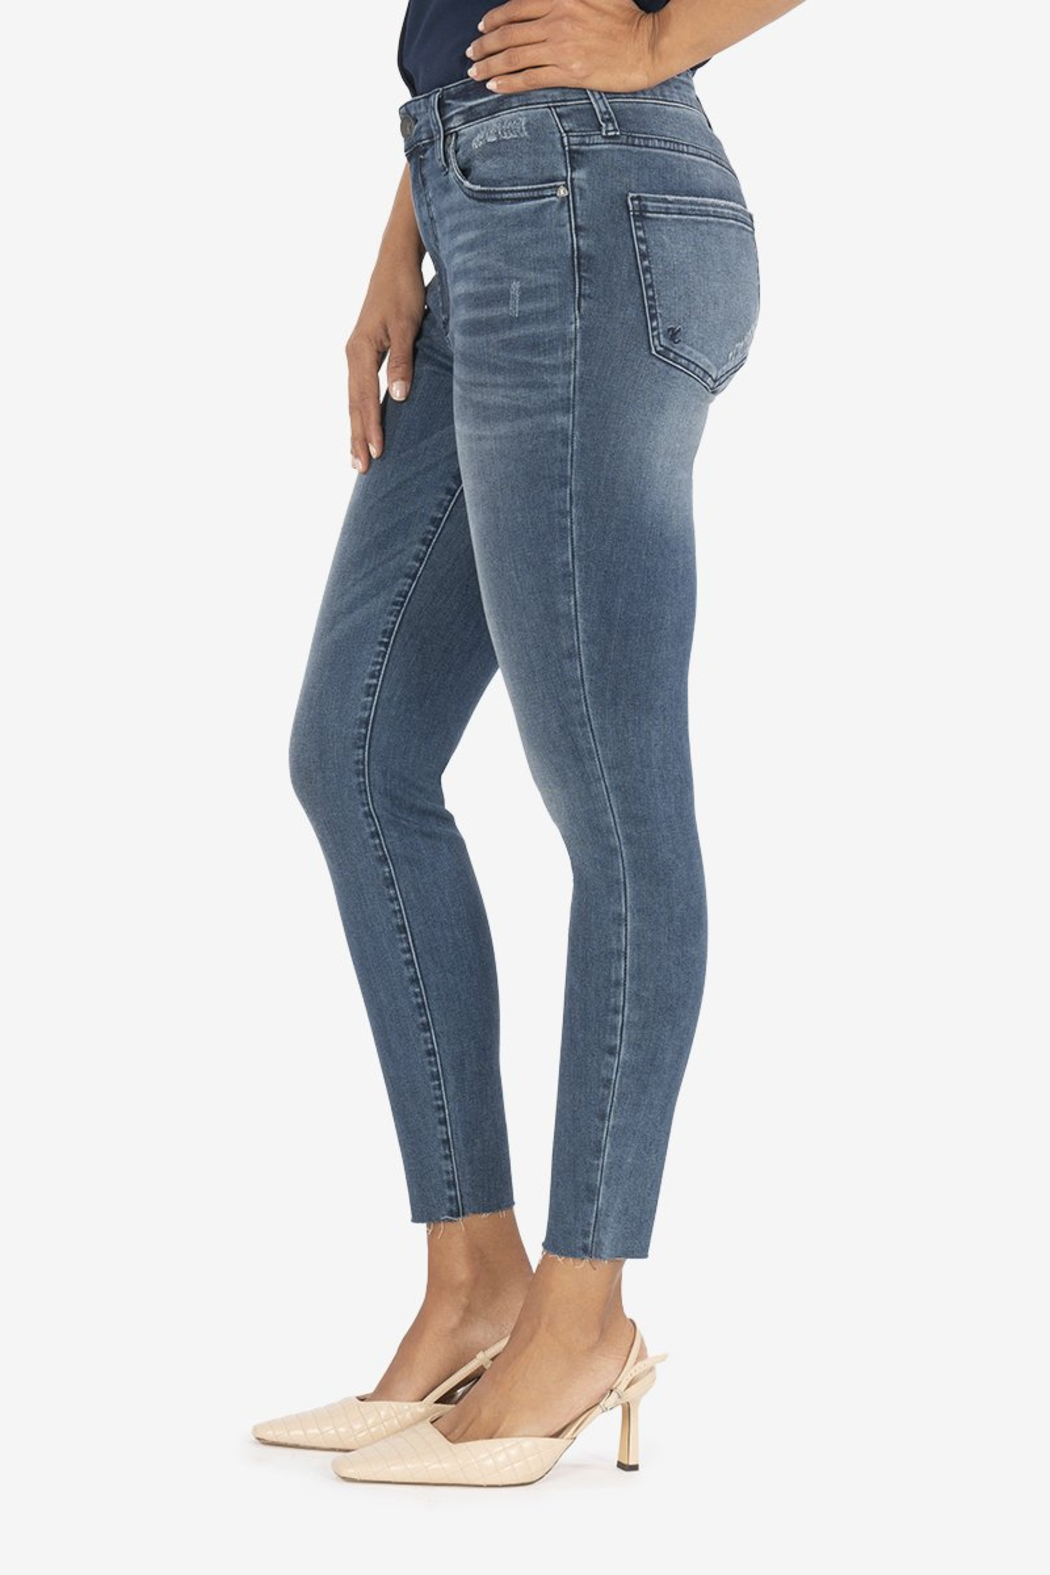 KUT CONNIE H/R ANKLE SKINNY - Front Cropped Image